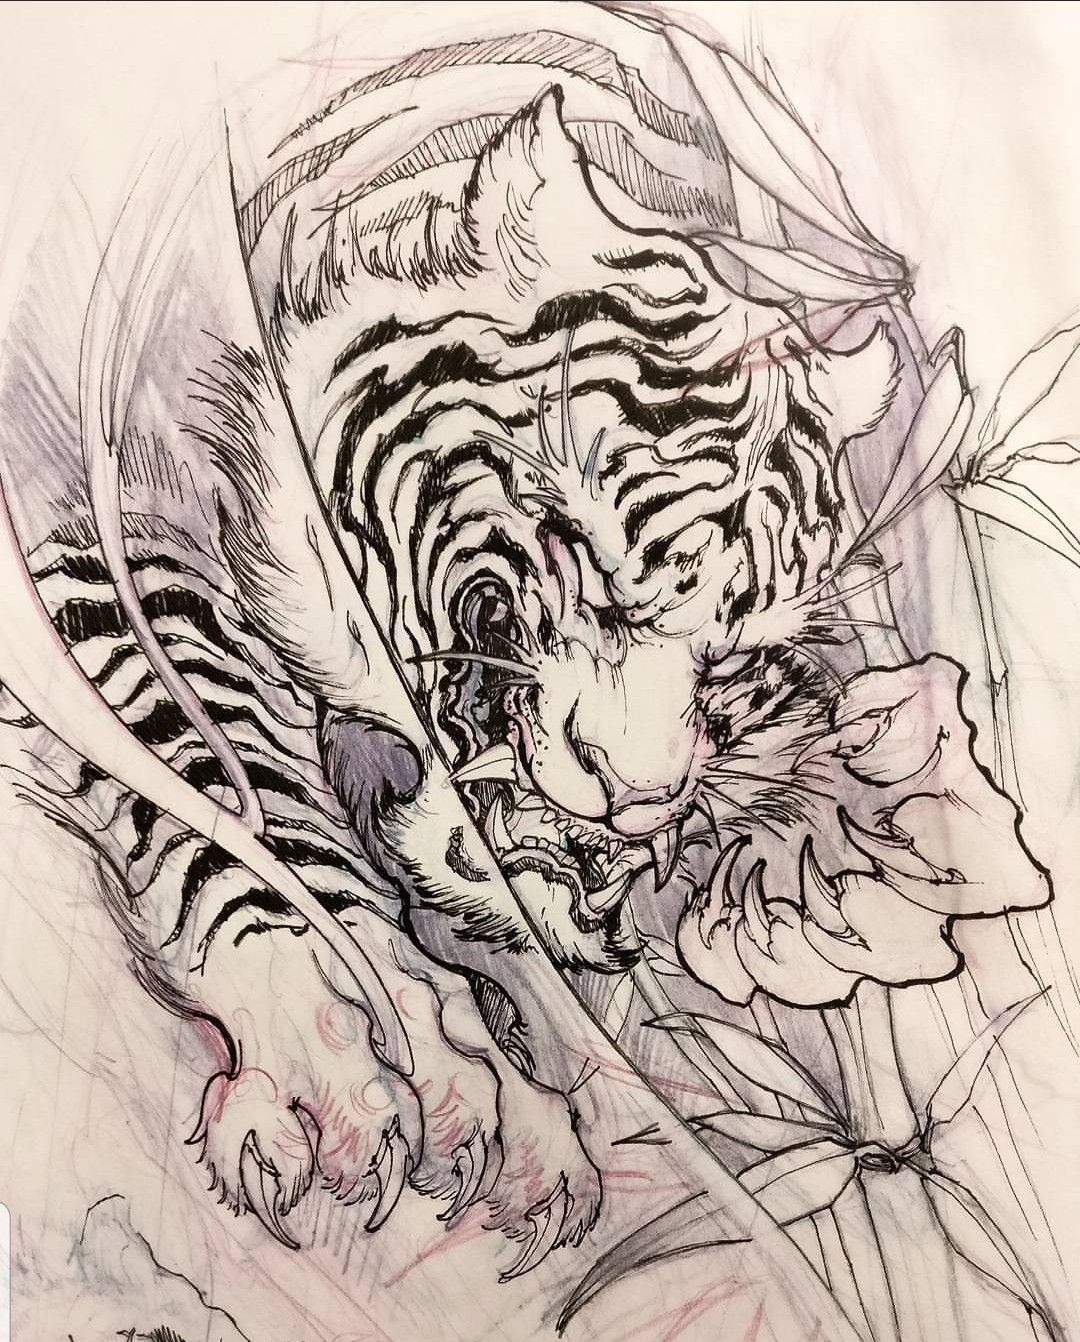 Pin By Triyanto Leksmana On Tatuaggio Giapponese In 2020 Tiger Tattoo Design Tattoo Design Drawings Tiger Tattoo